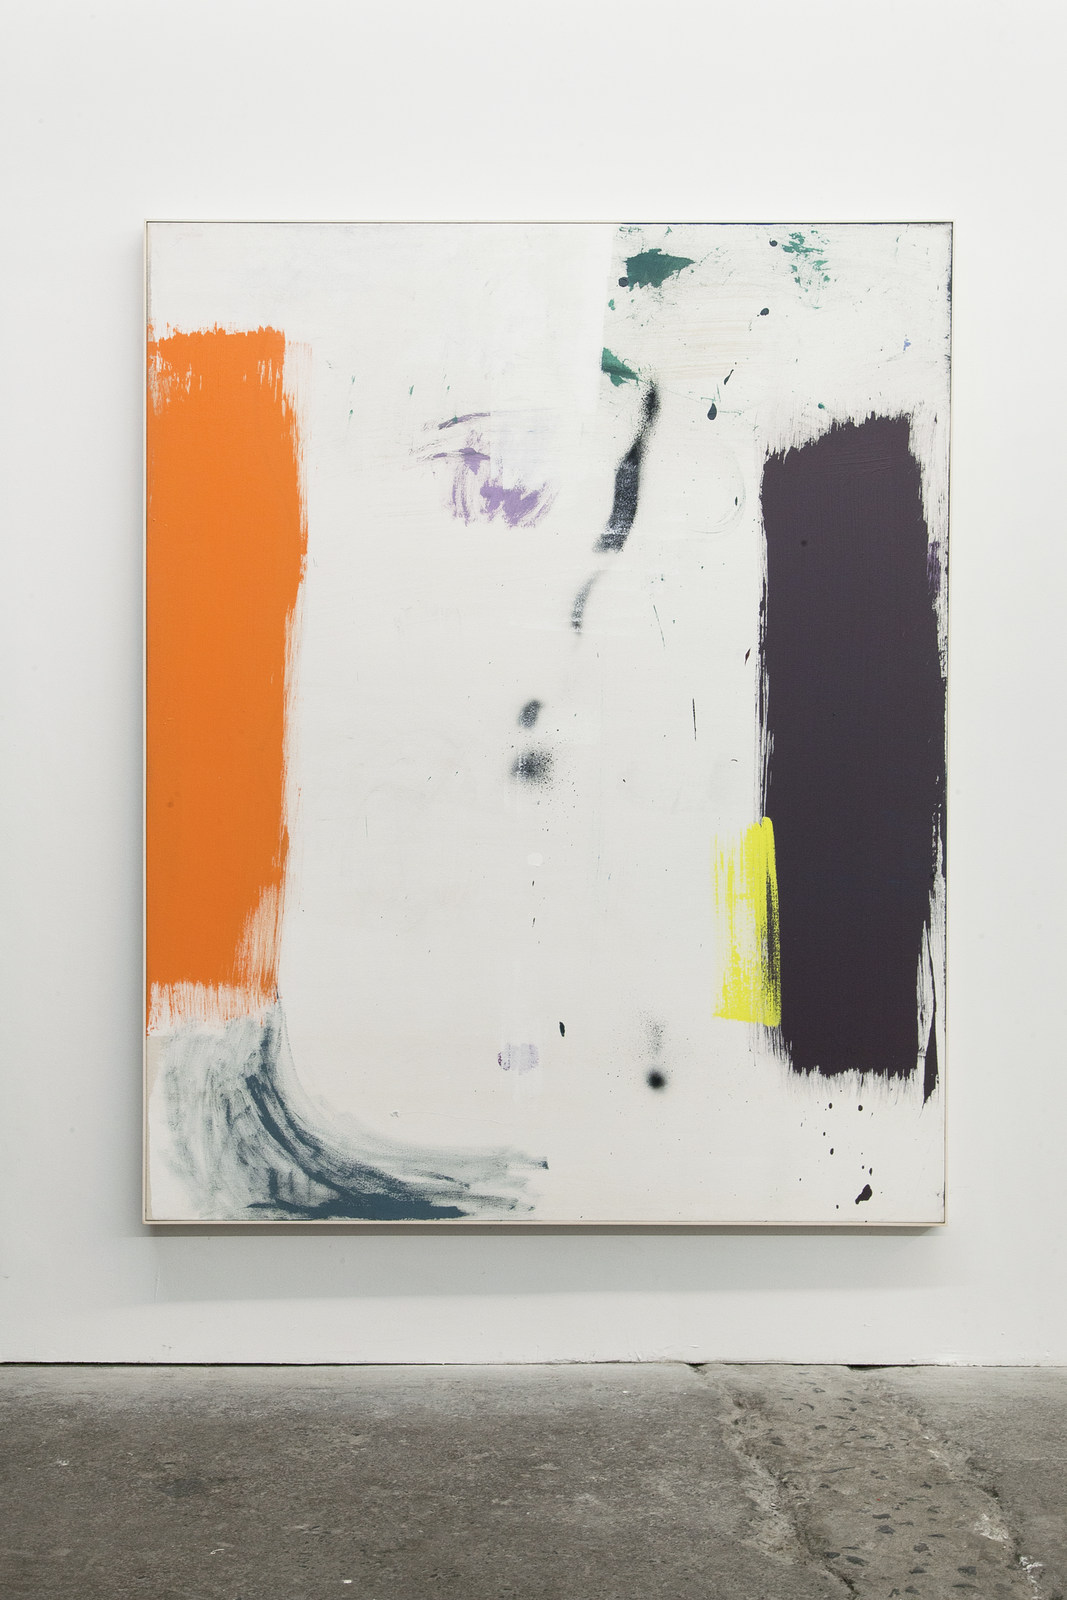 02_Jean-François Lauda. Untitled 32. Acrylic on canvas 193 x 152.5 cm. 2016